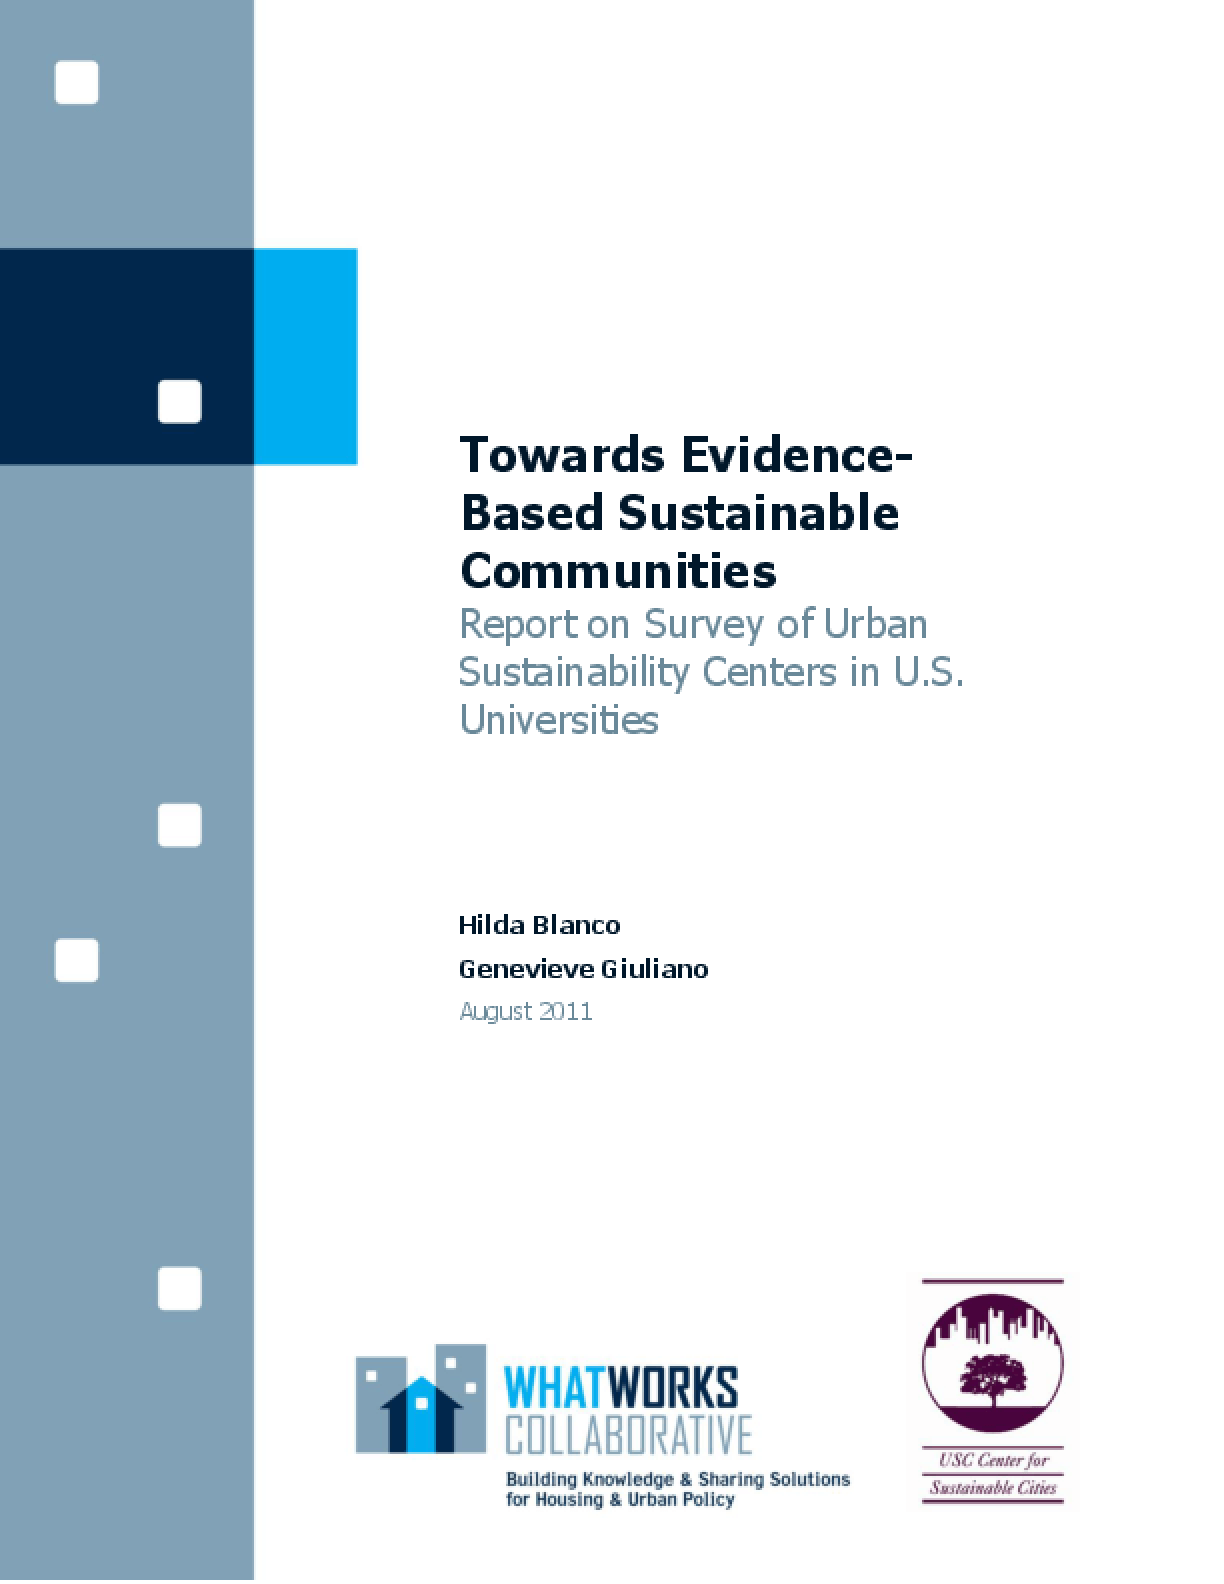 Towards Evidence-Based Sustainable Communities: Report on Survey of Urban Sustainability Centers in U.S. Universities